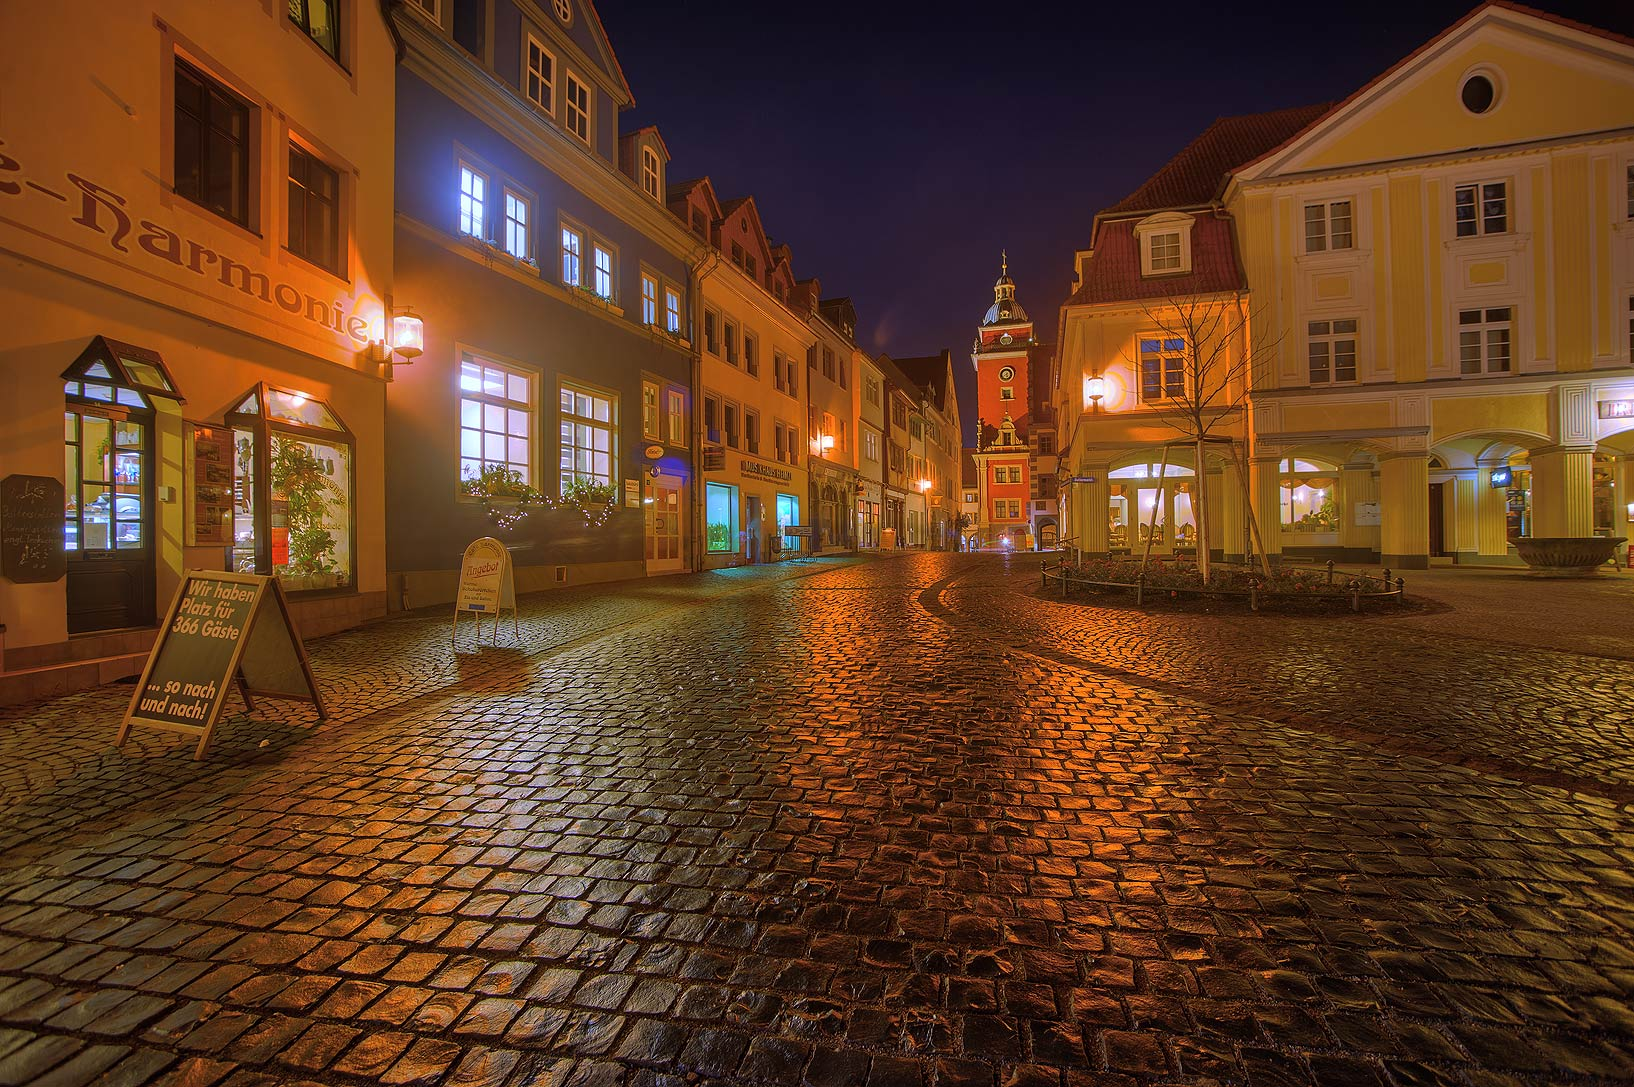 Stone pavement on a square in old city. Gotha, Germany